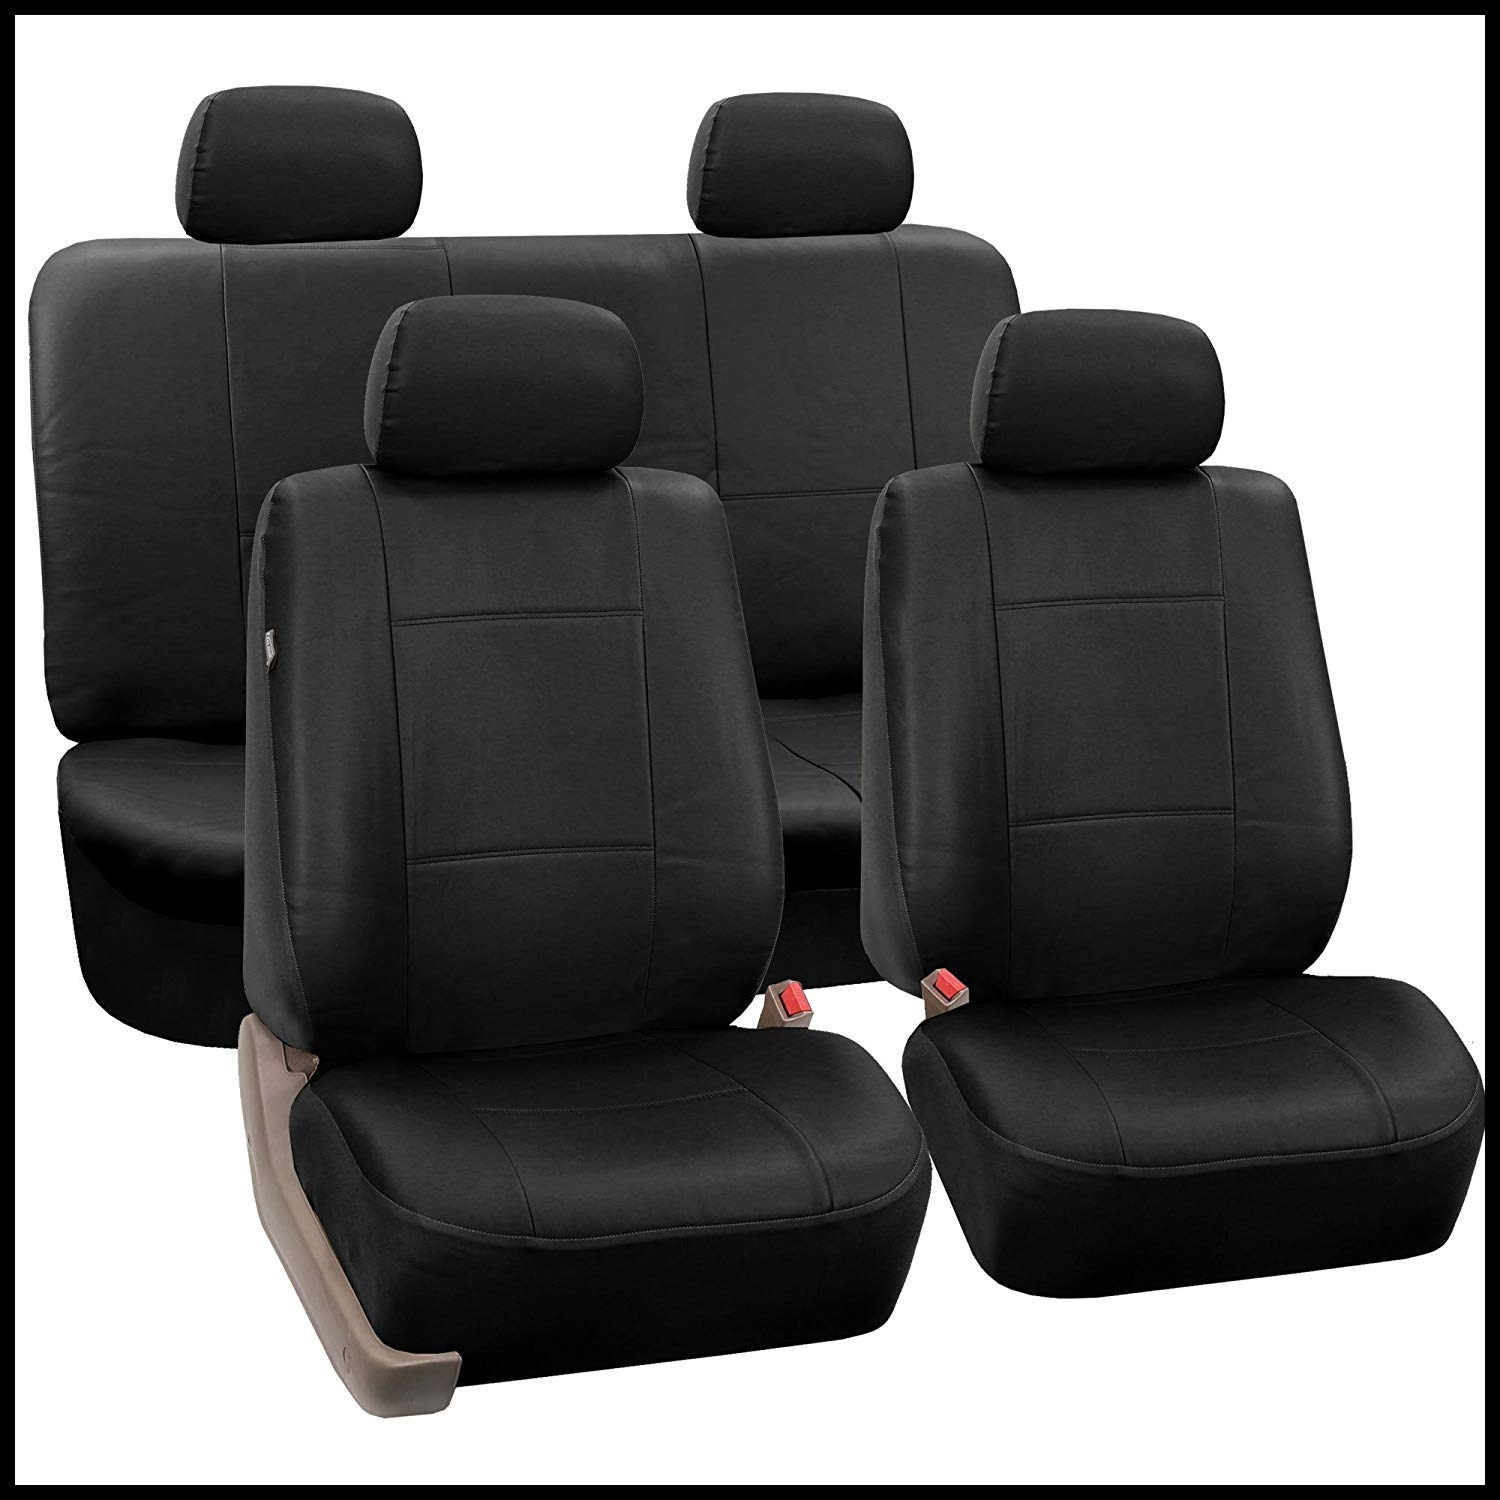 Amazon FH PU001 PU Leather Car Seat Covers Solid Black Color Automotive